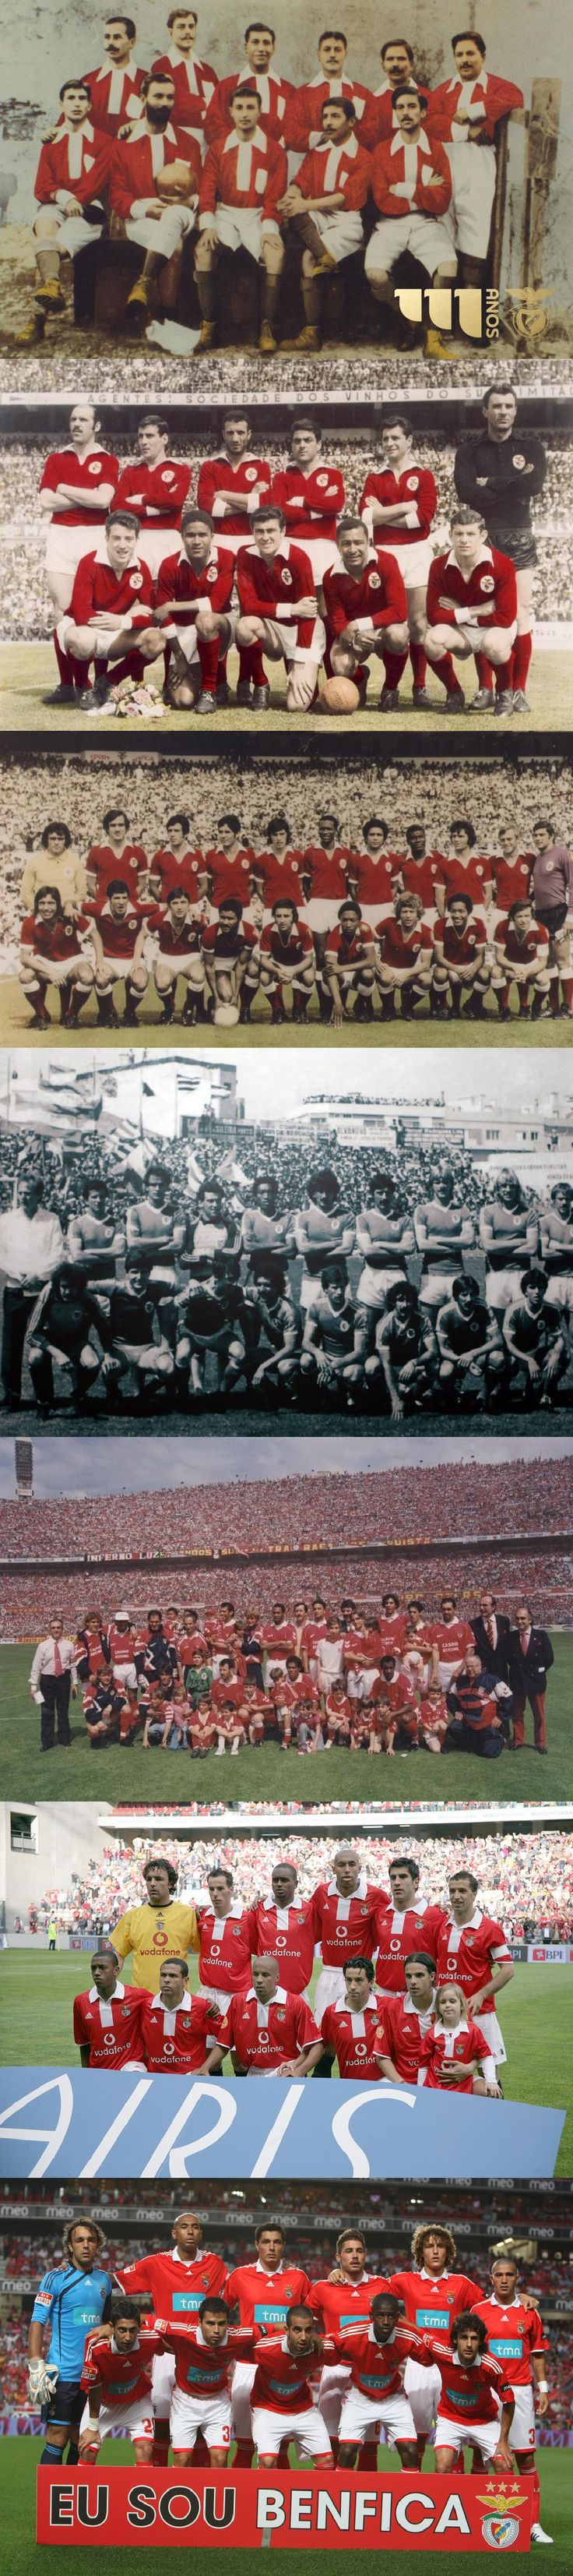 S.L. Benfica - 111 anos